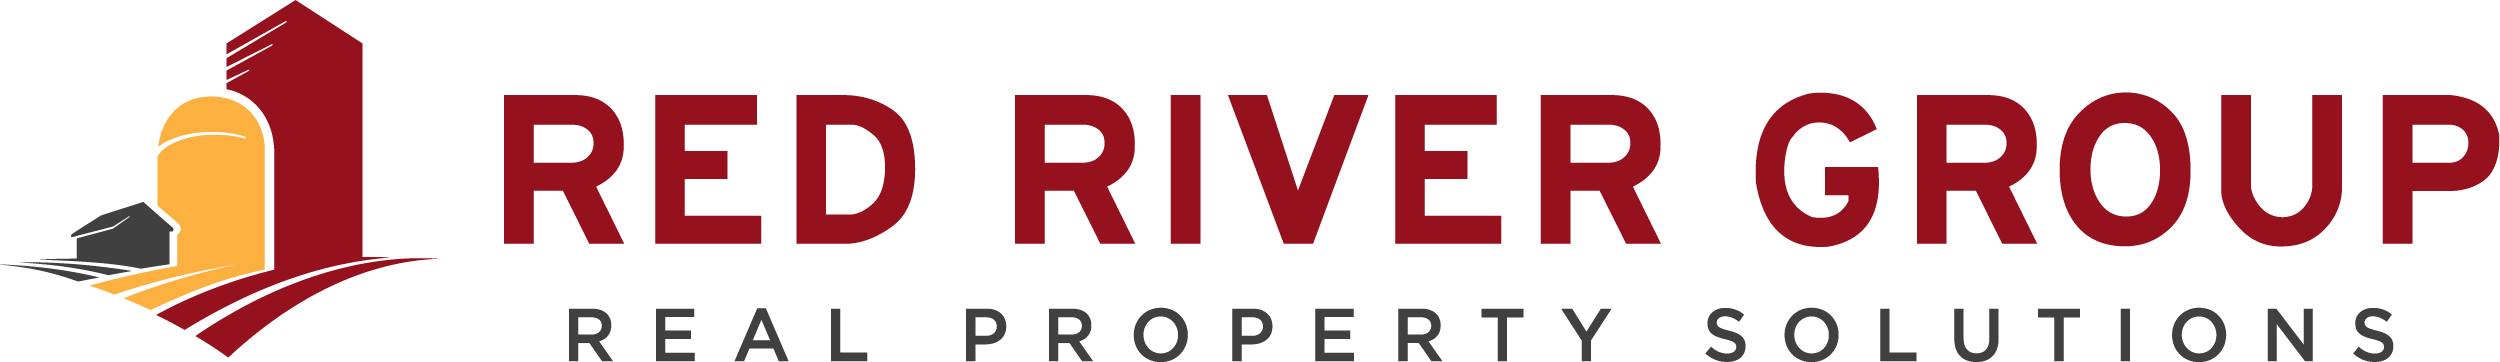 Red River Group